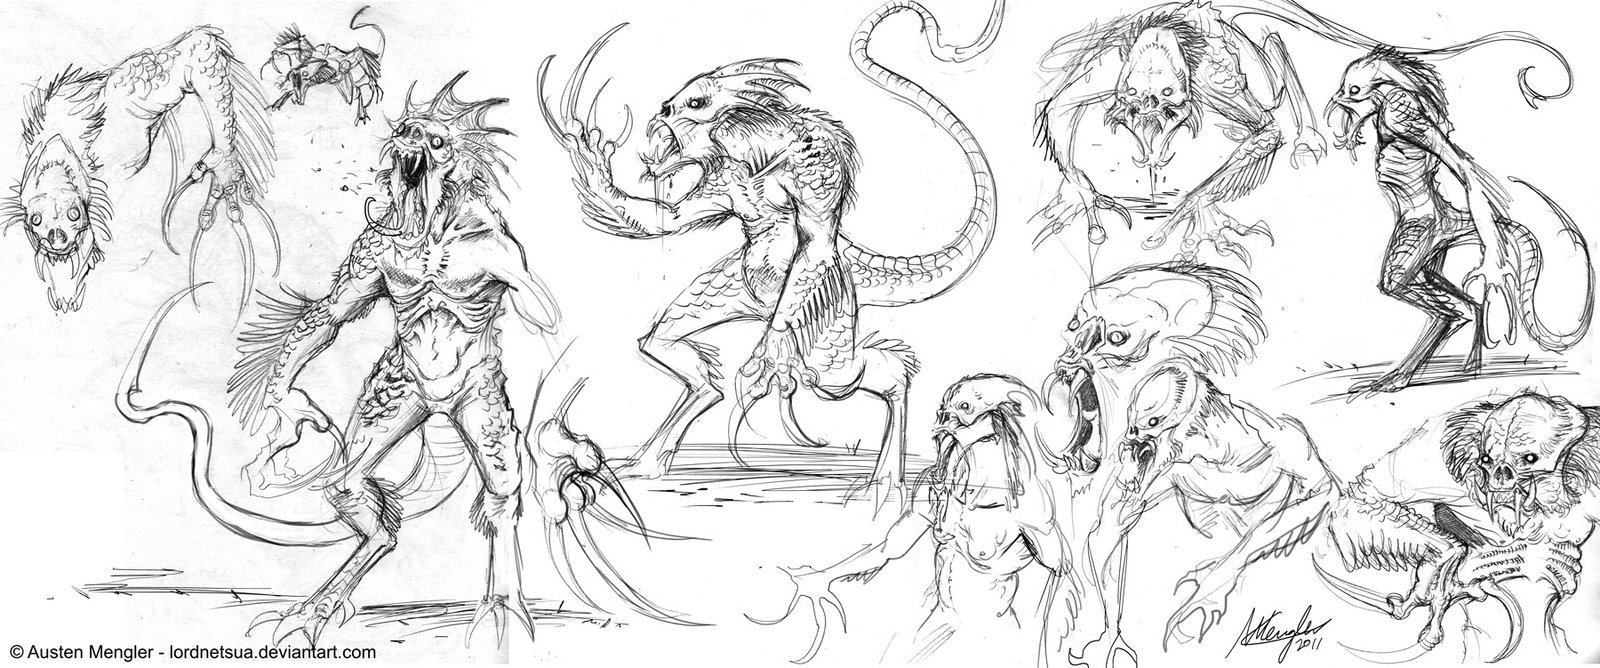 creature_design___sketches_pg_3_by_lordnetsua-d5cylyp.jpg